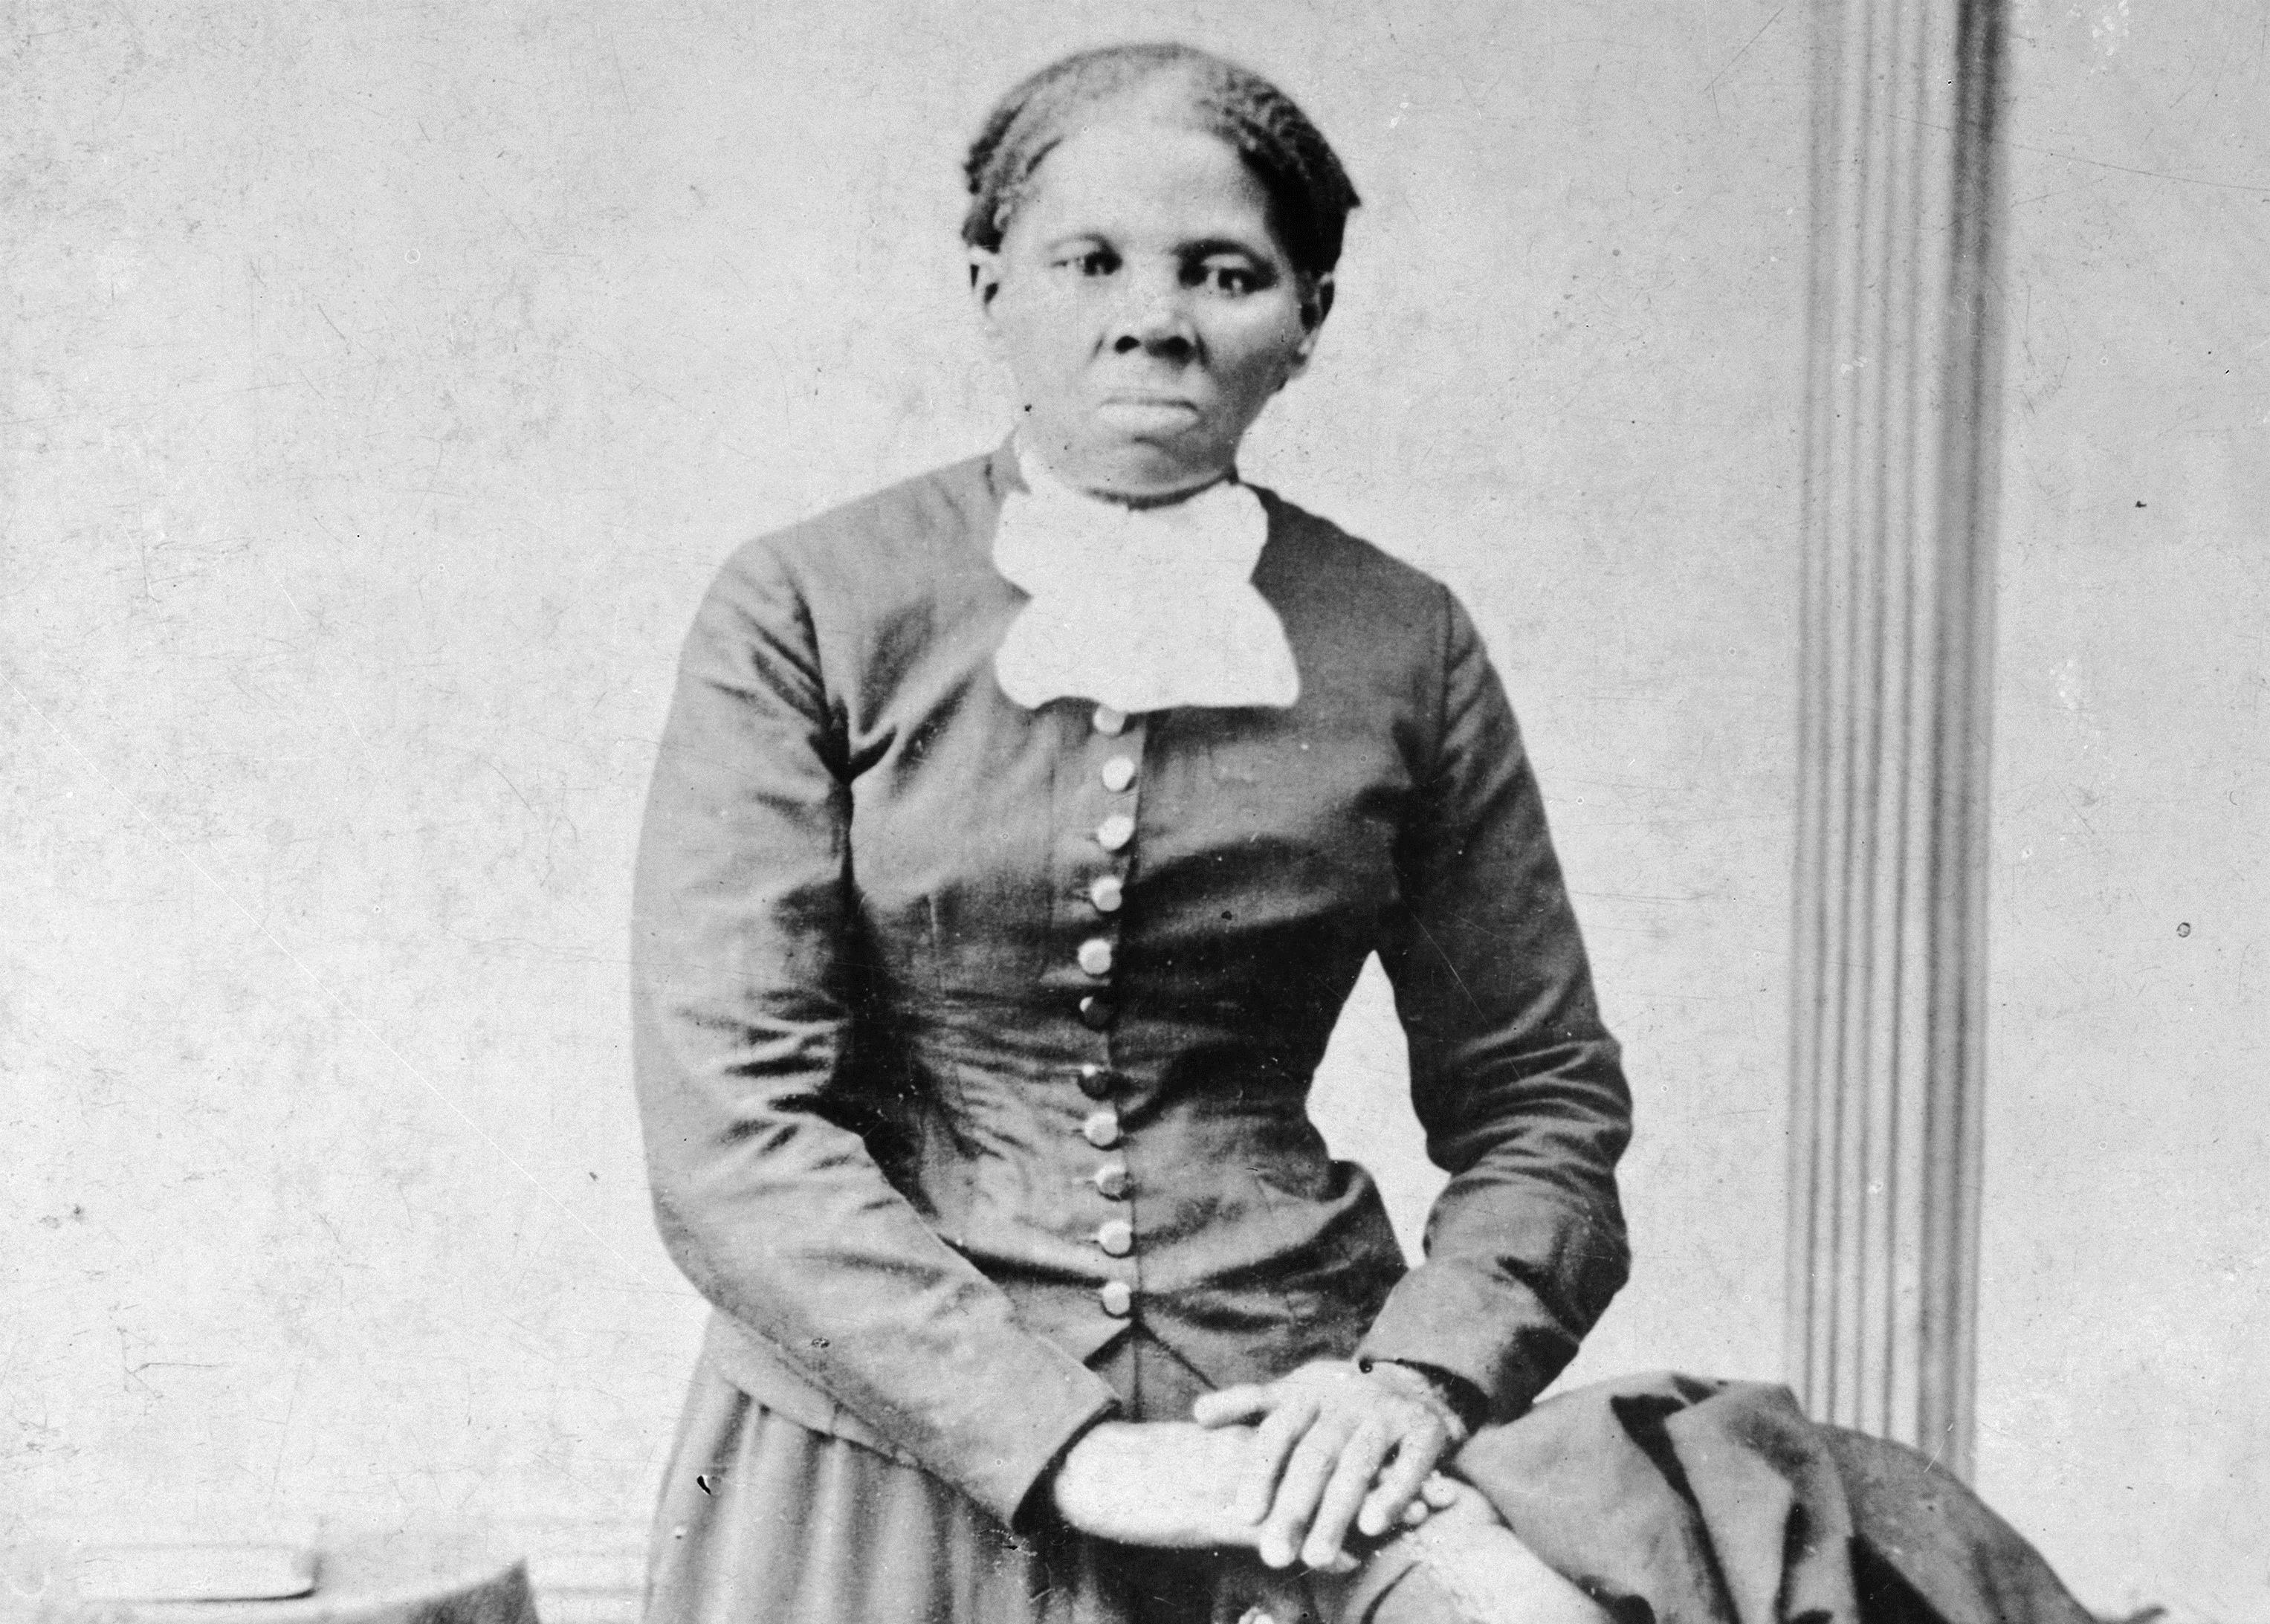 This image provided by the Library of Congress shows Harriet Tubman, between 1860 and 1875.